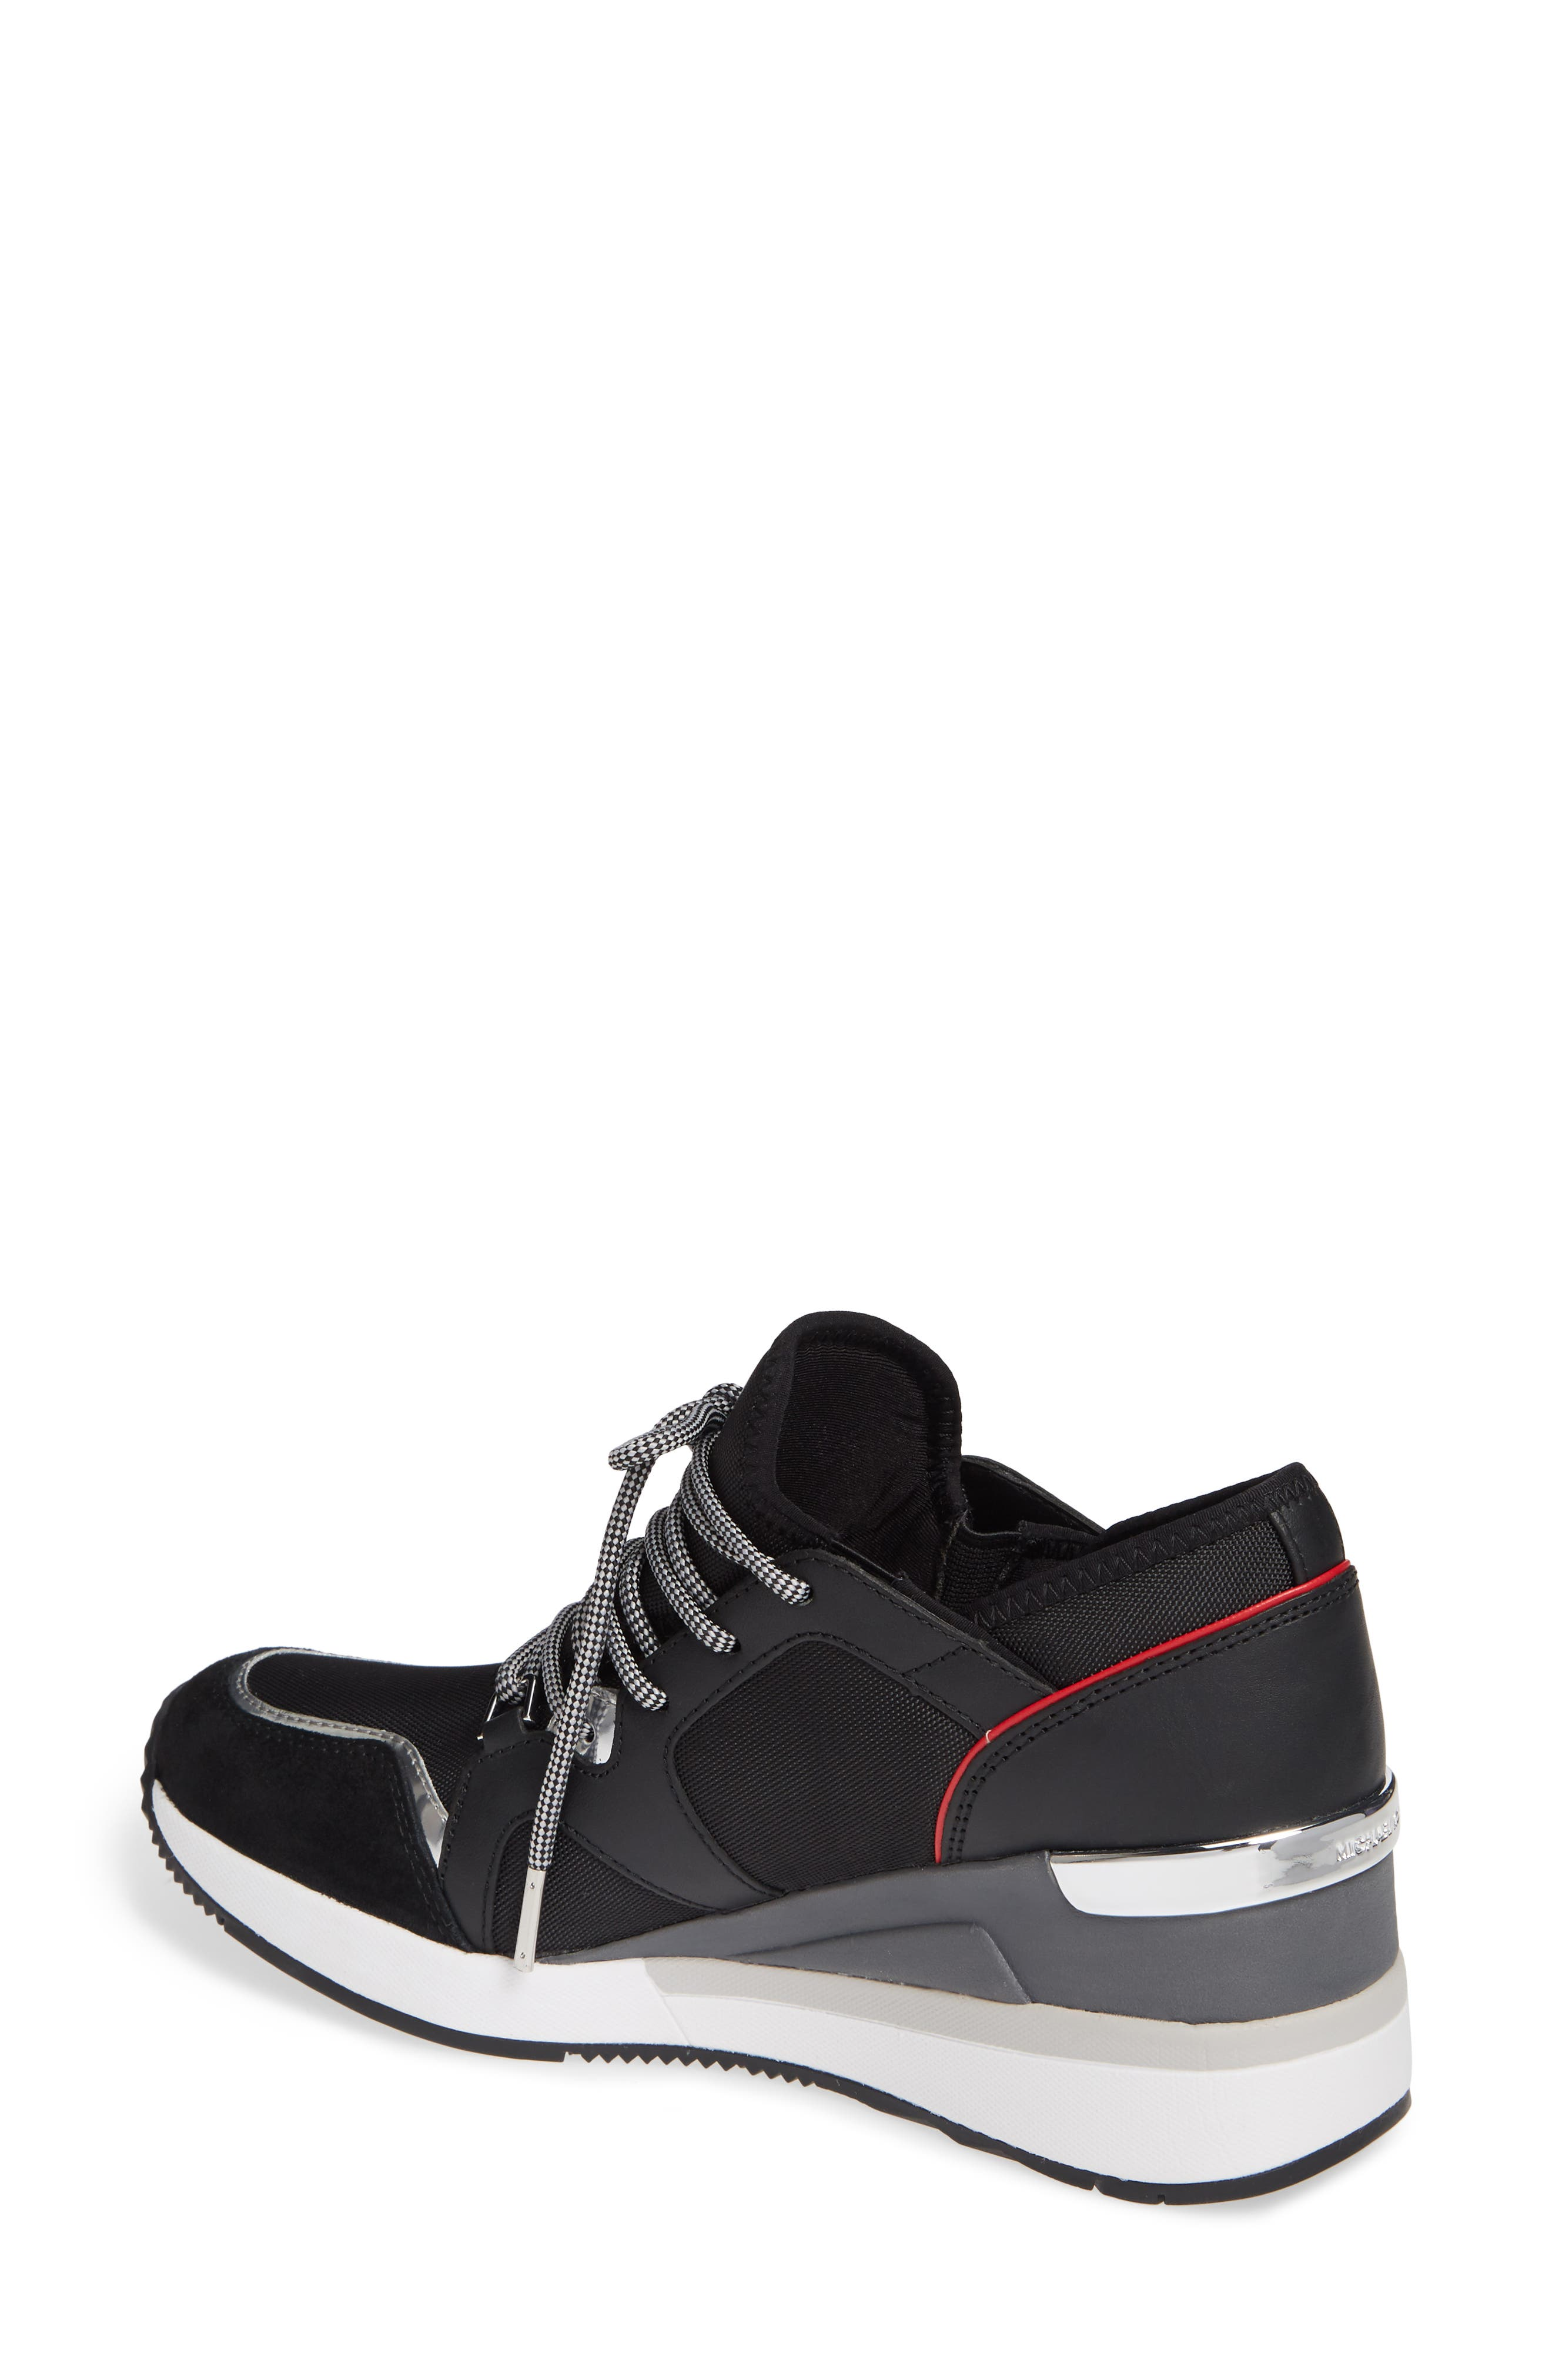 Scout Trainer Wedge Sneaker,                             Alternate thumbnail 2, color,                             001